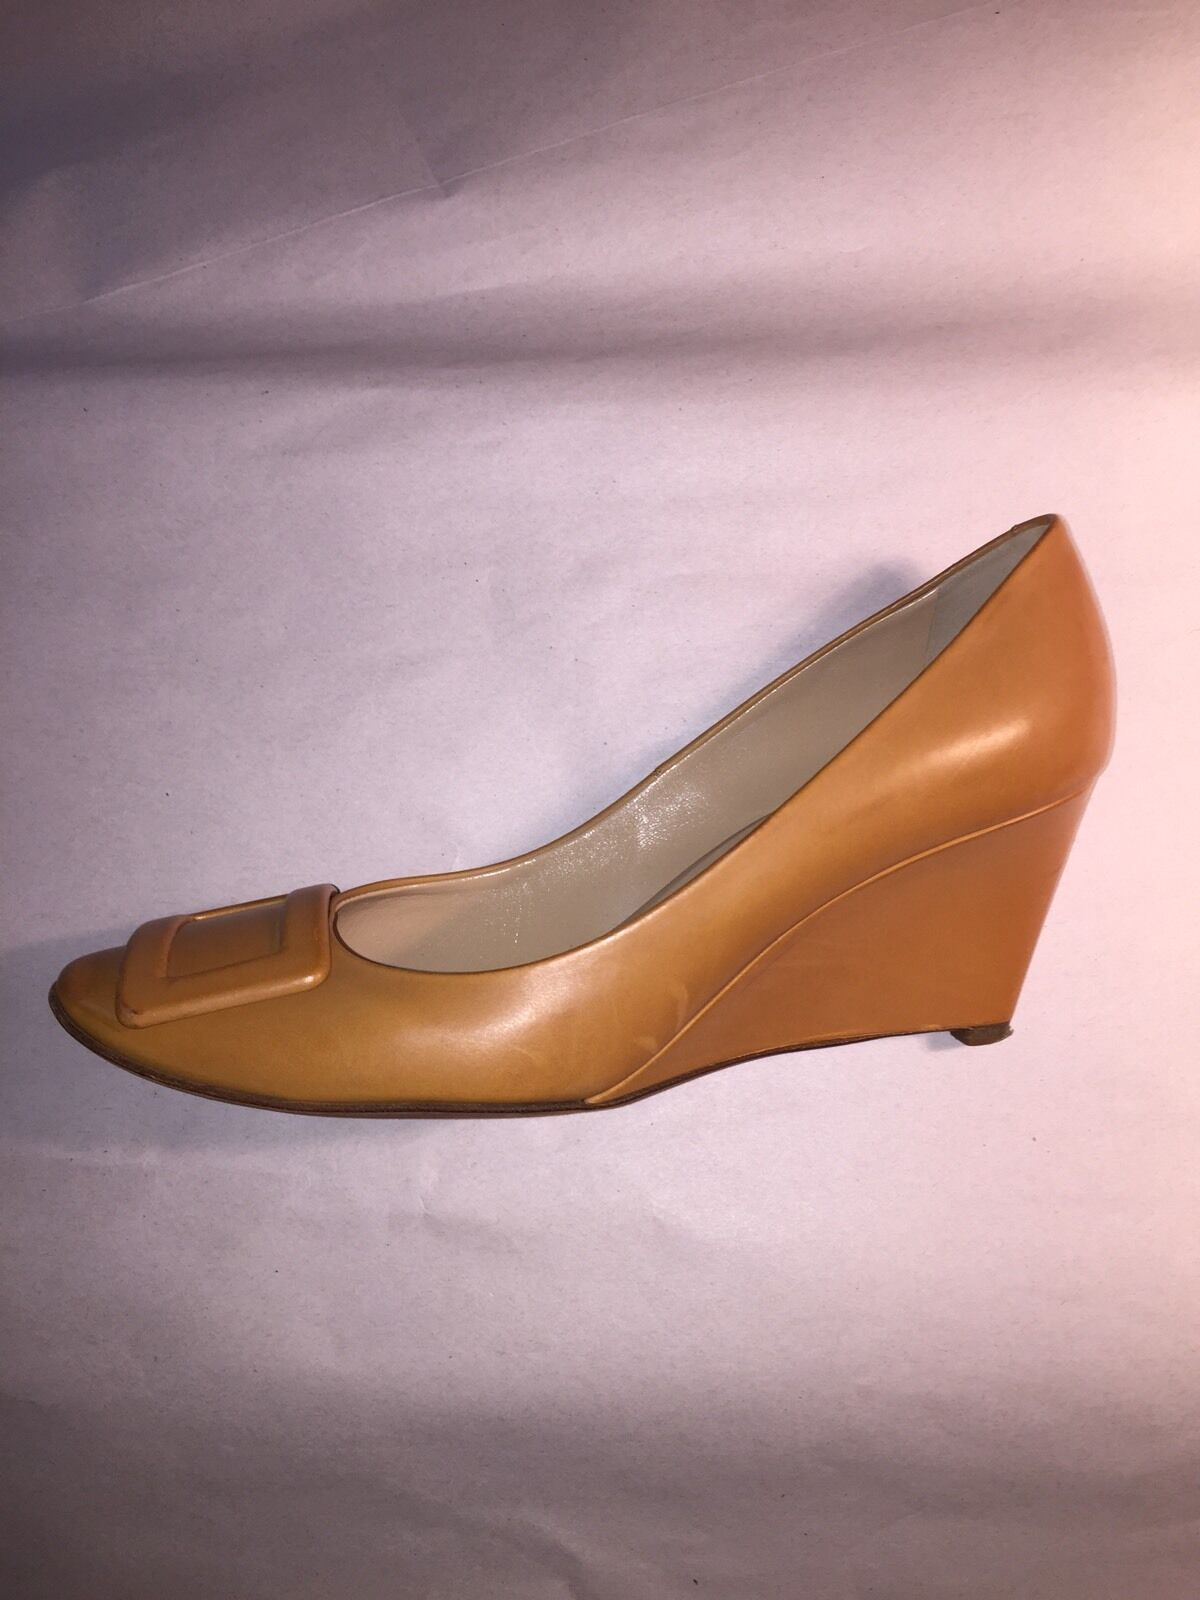 pre-loved authentic ROGER VIVIER size 40 1/ 2 tan leather WEDGE HEEL w/buckles